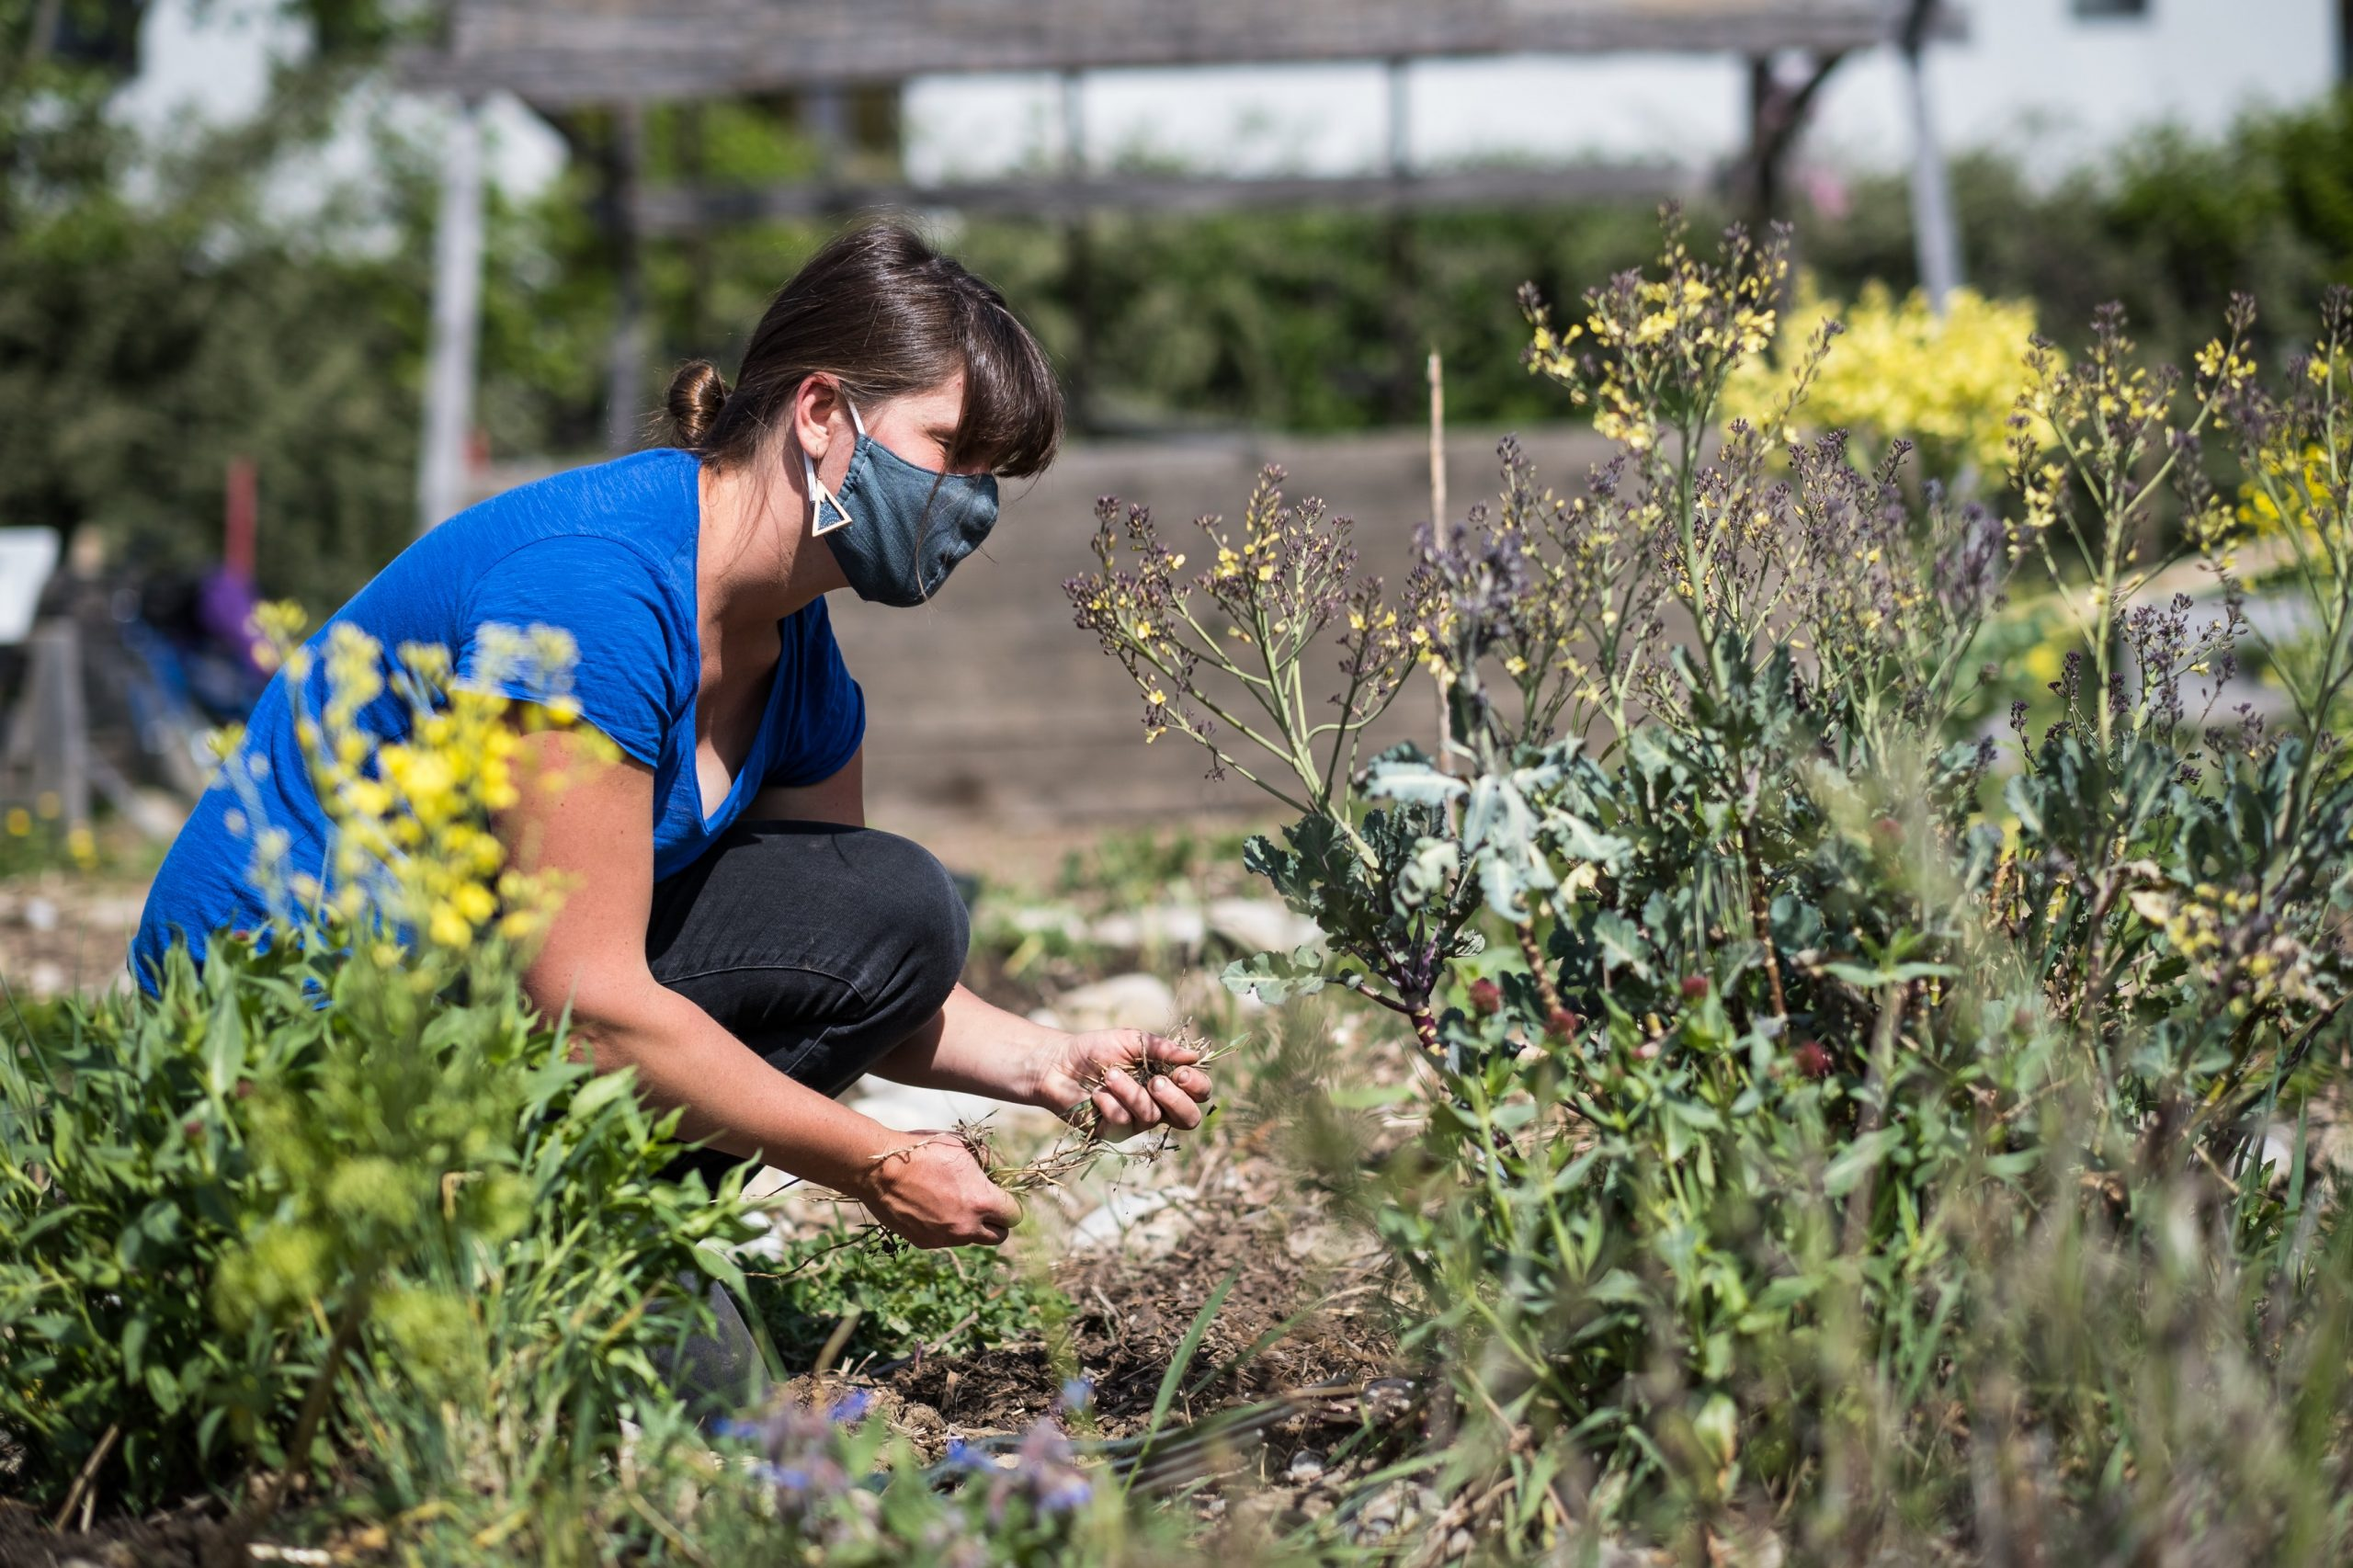 times-are-hard-gardeners-can-help